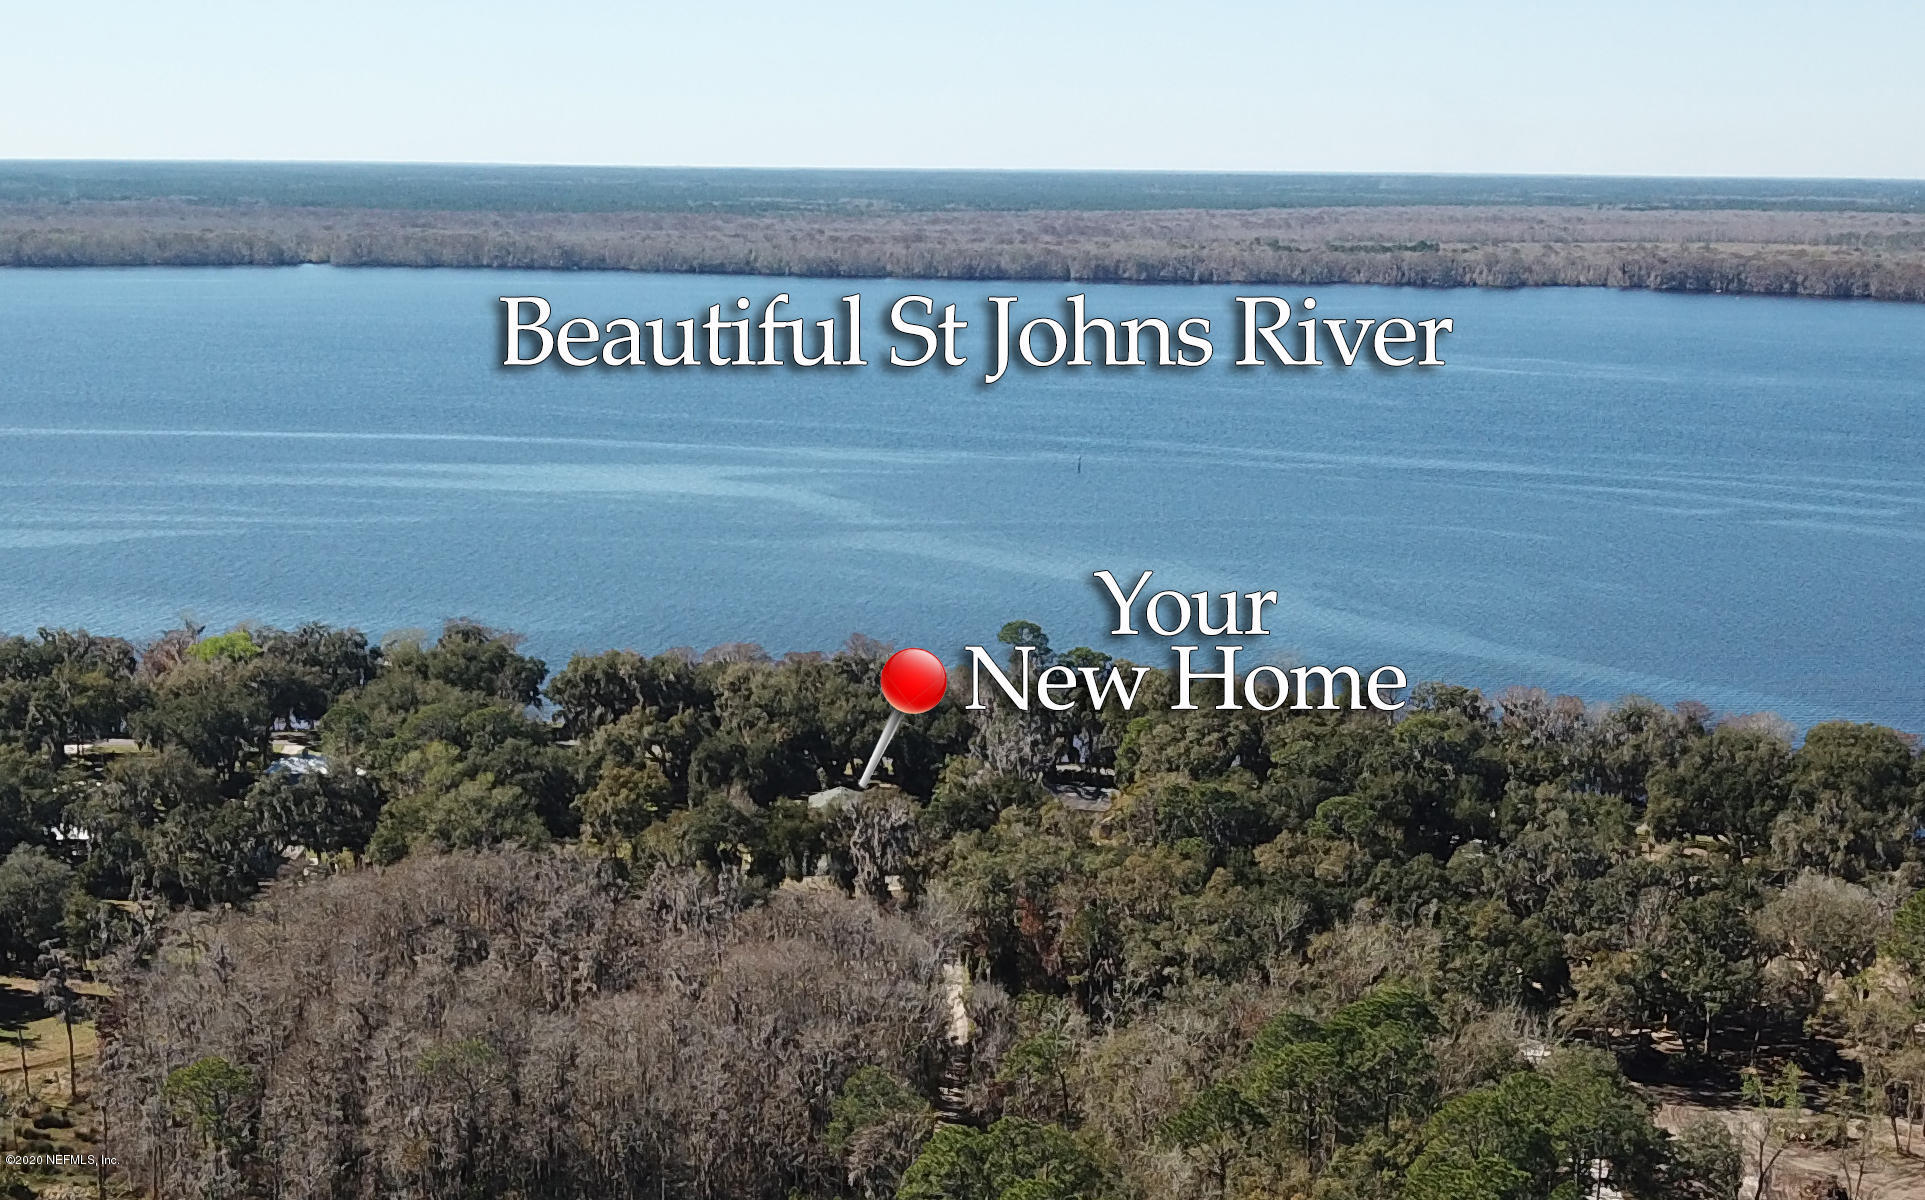 10536 COUNTY RD 13, ST AUGUSTINE, FLORIDA 32092, 5 Bedrooms Bedrooms, ,4 BathroomsBathrooms,Residential,For sale,COUNTY RD 13,1039585